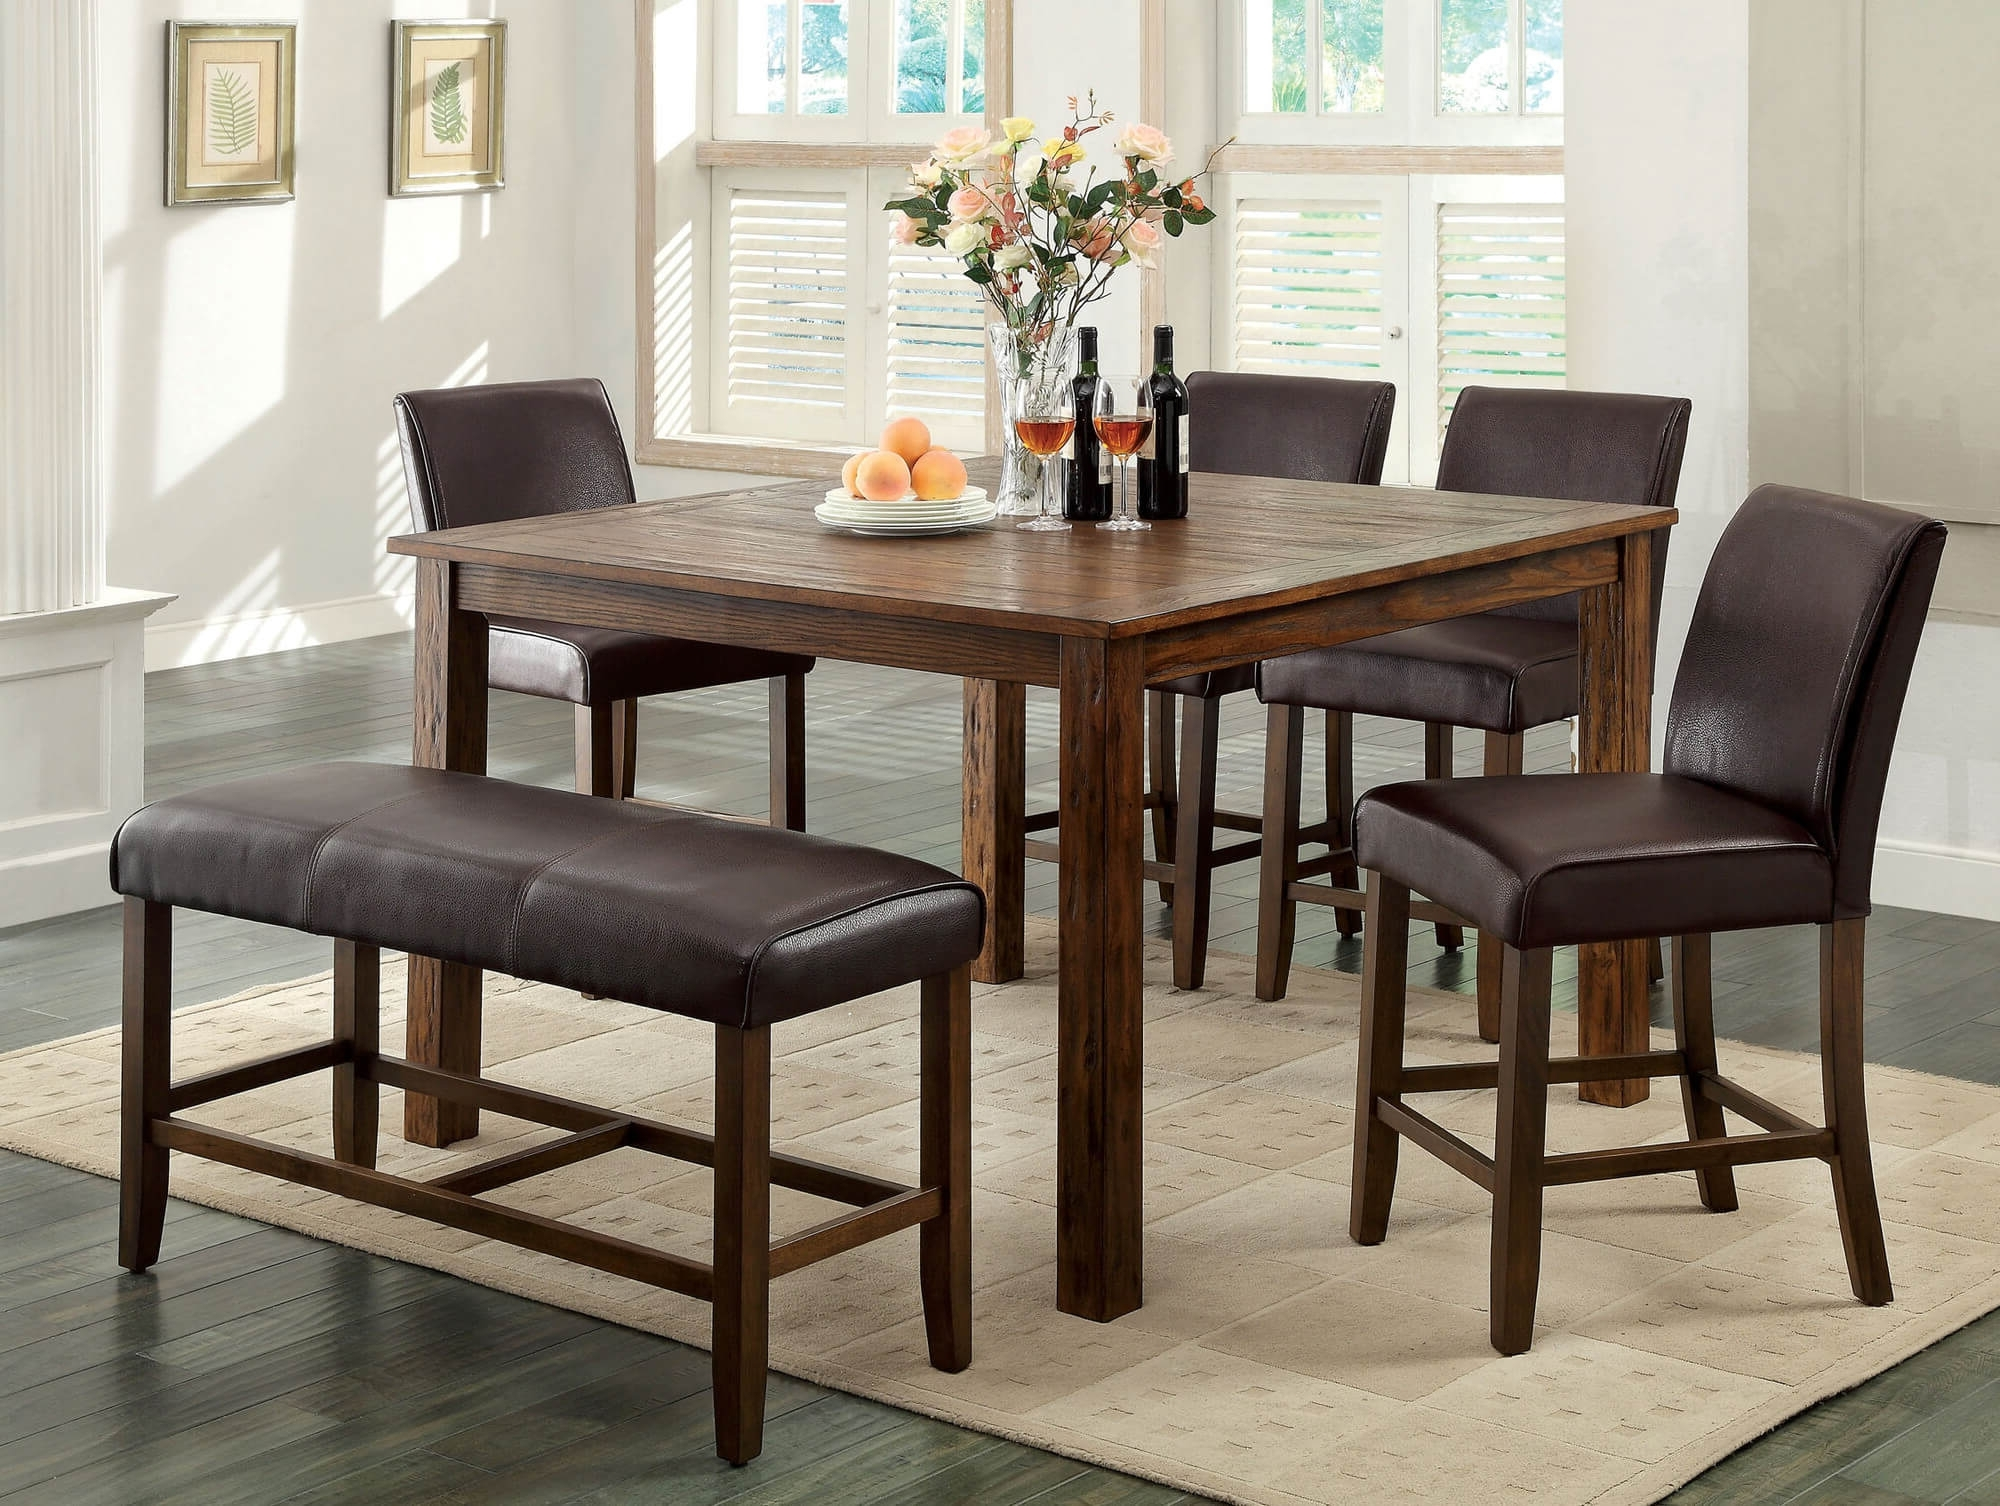 Indoor Picnic Style Dining Tables With Regard To Most Popular 26 Dining Room Sets (Big And Small) With Bench Seating (2018) (Gallery 18 of 25)